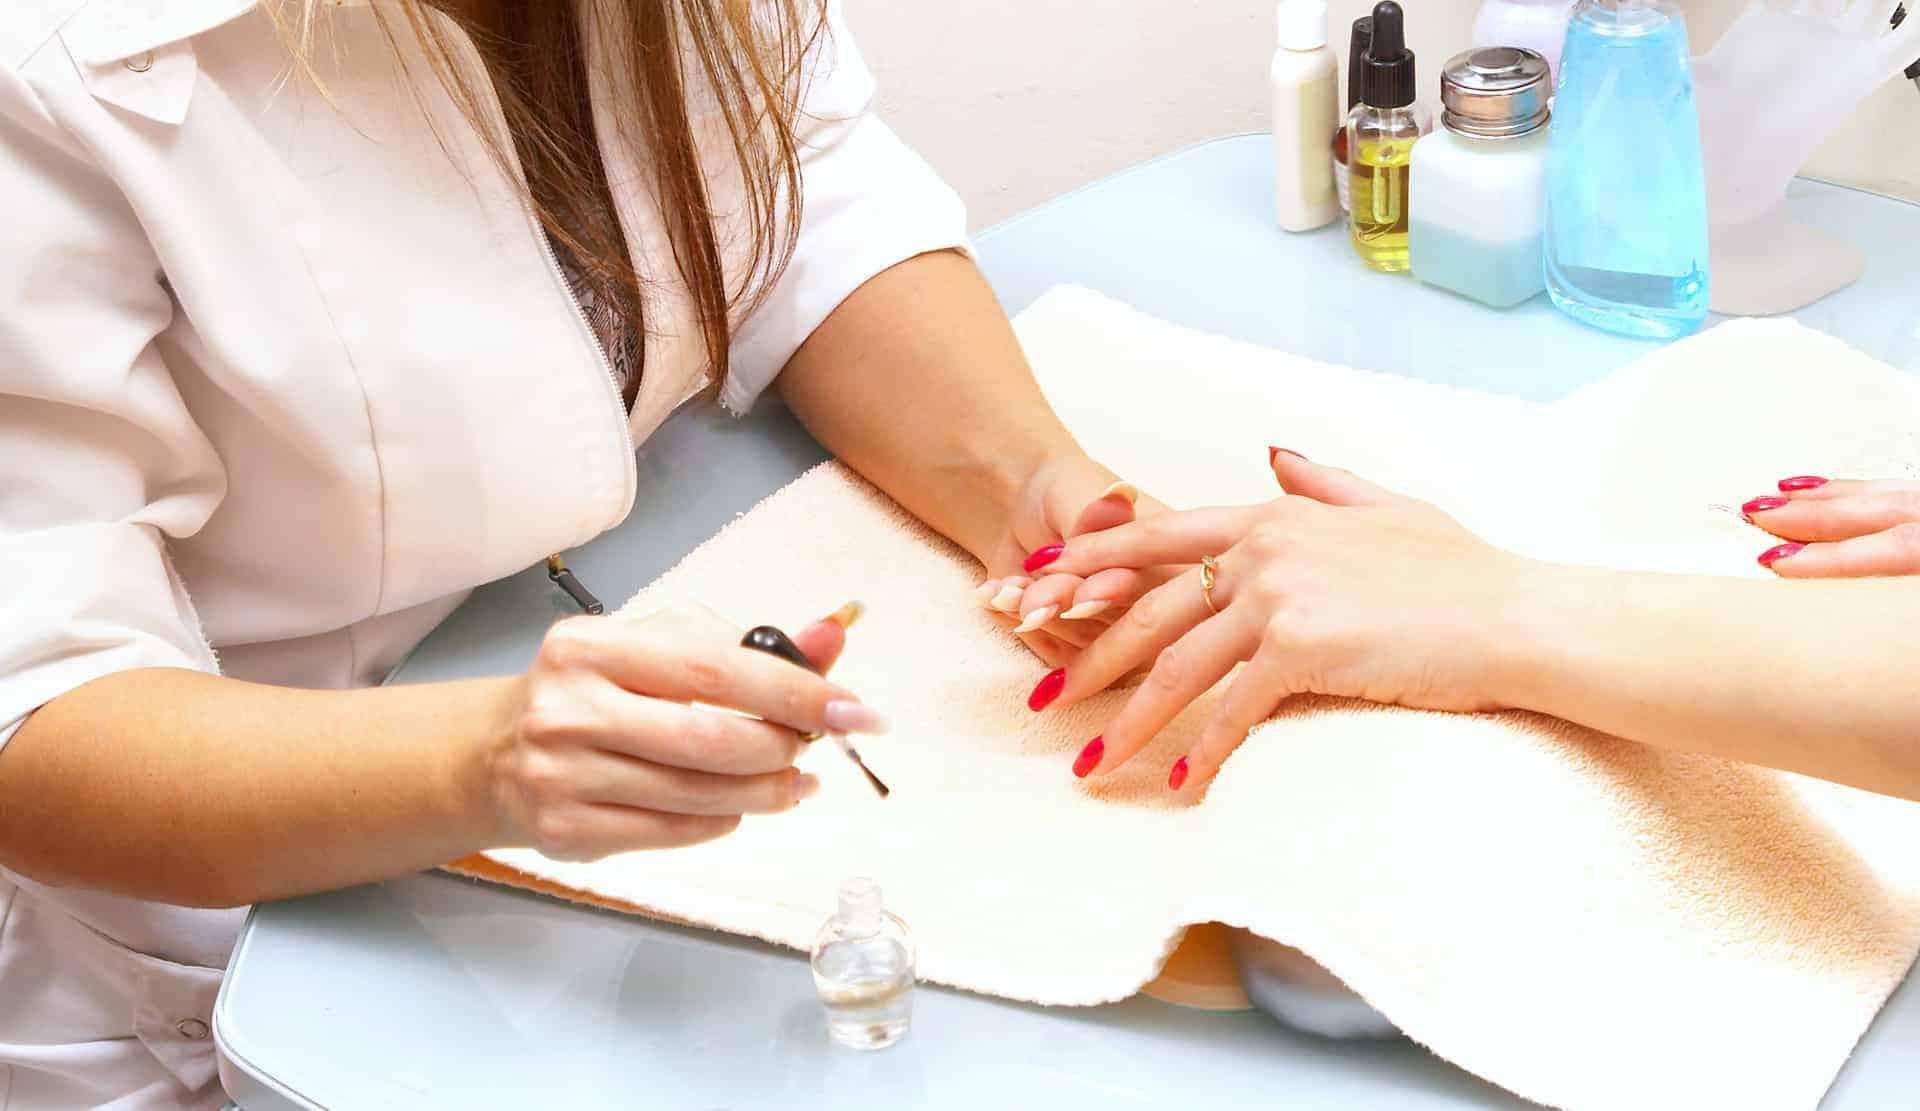 Manicure & Pedicure Salon Manicure And Pedicure Safety How Safe Is Your Nail Salon